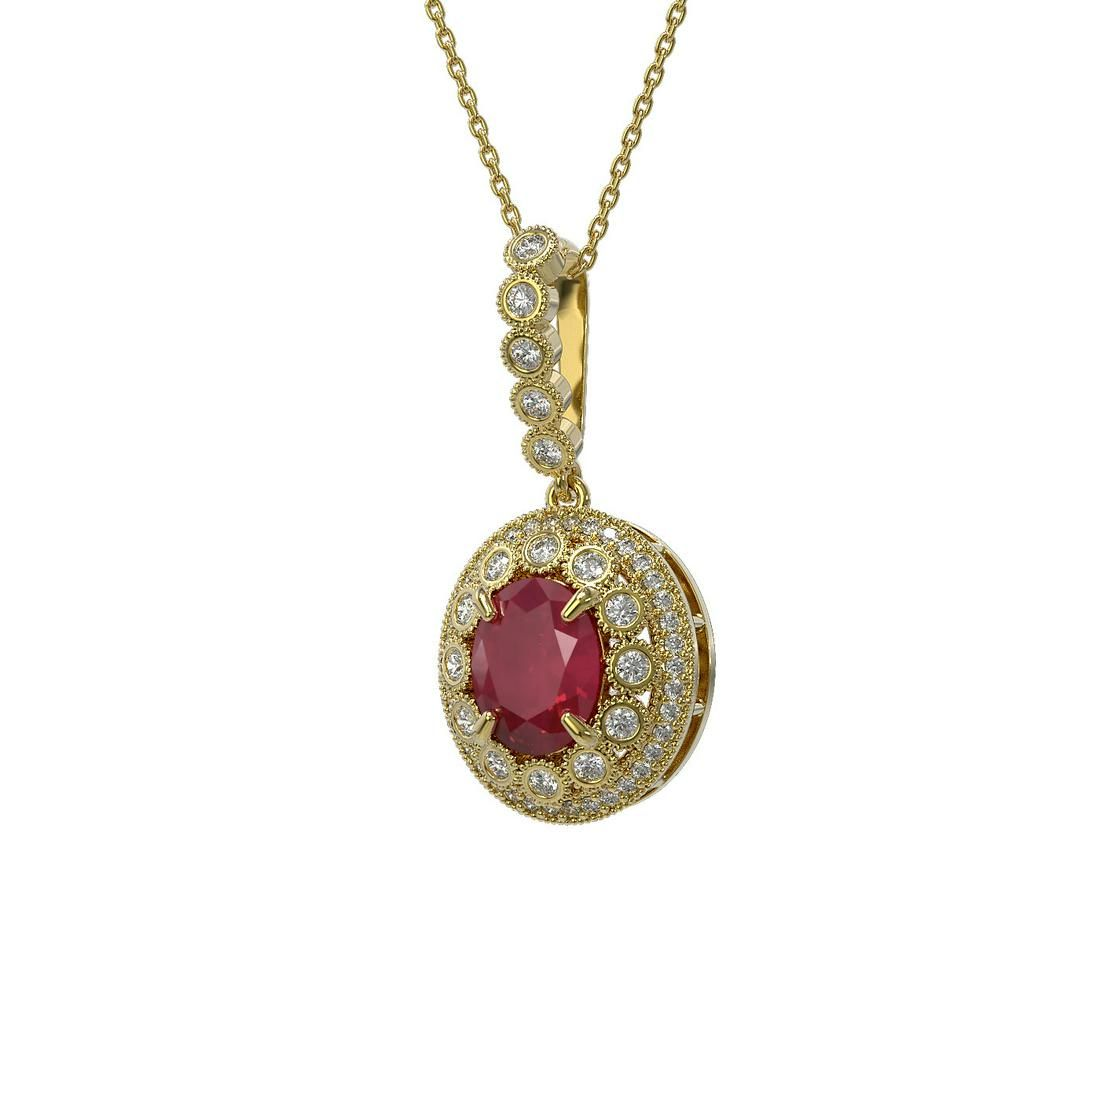 4.67 ctw Certified Ruby & Diamond Victorian Necklace